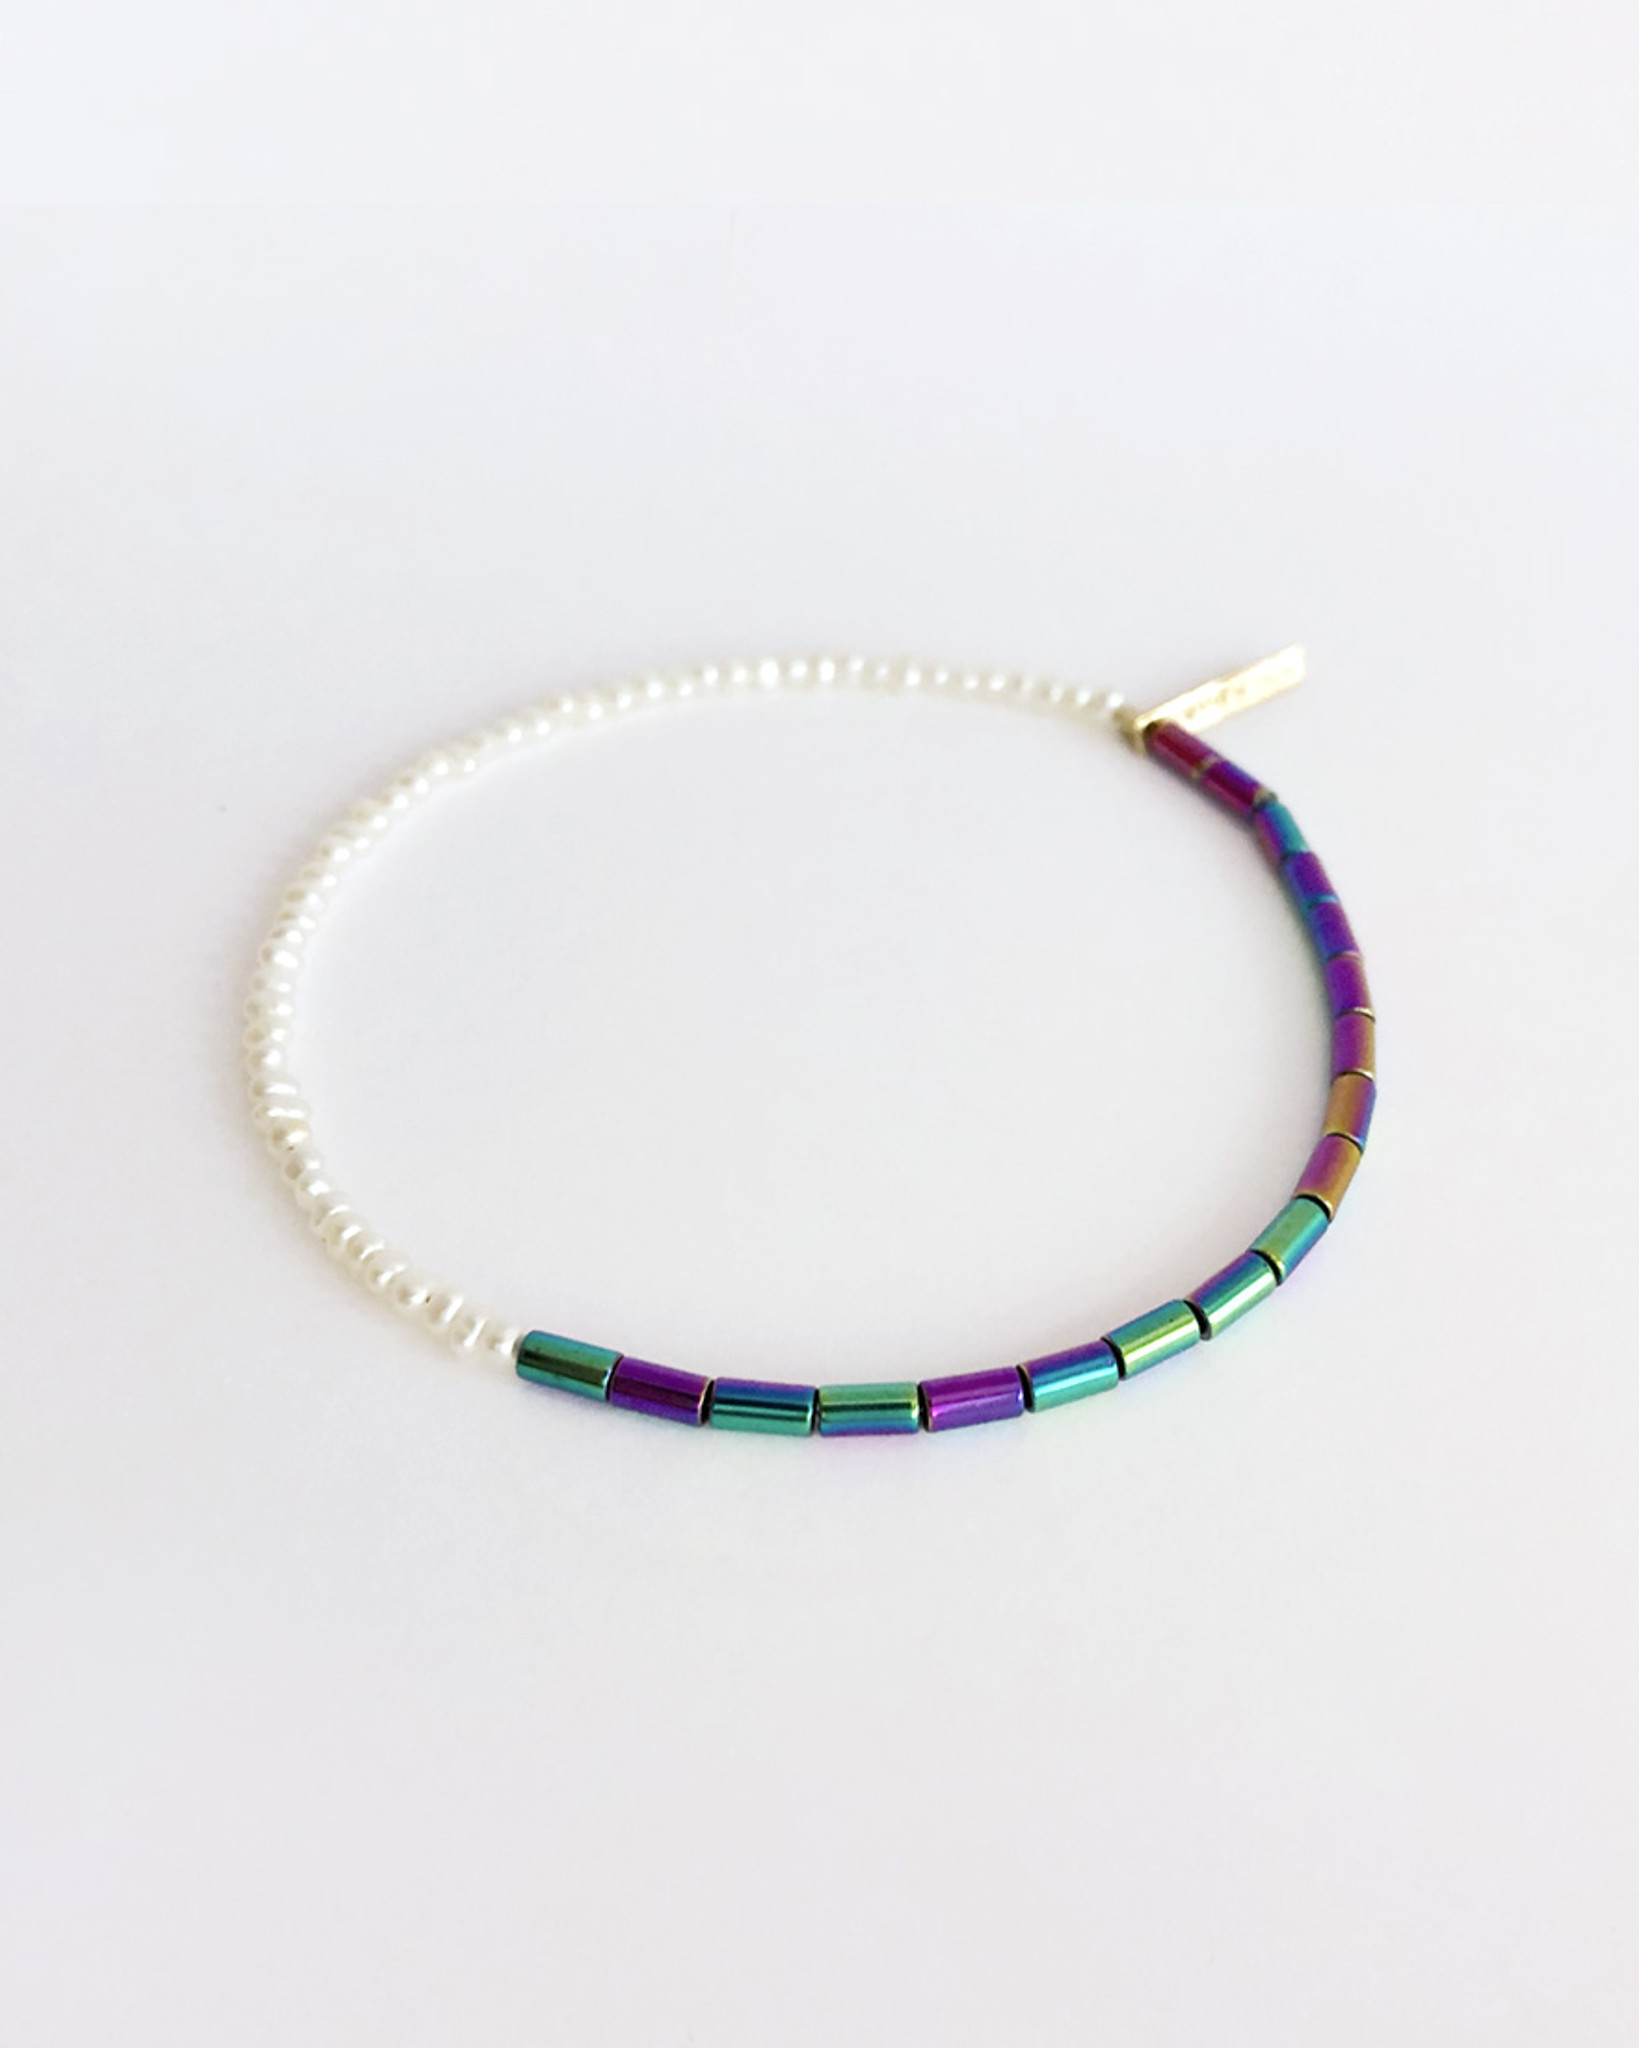 Seed Pearl and Rainbow Bead Bracelet by Designer Nektar De Stagni